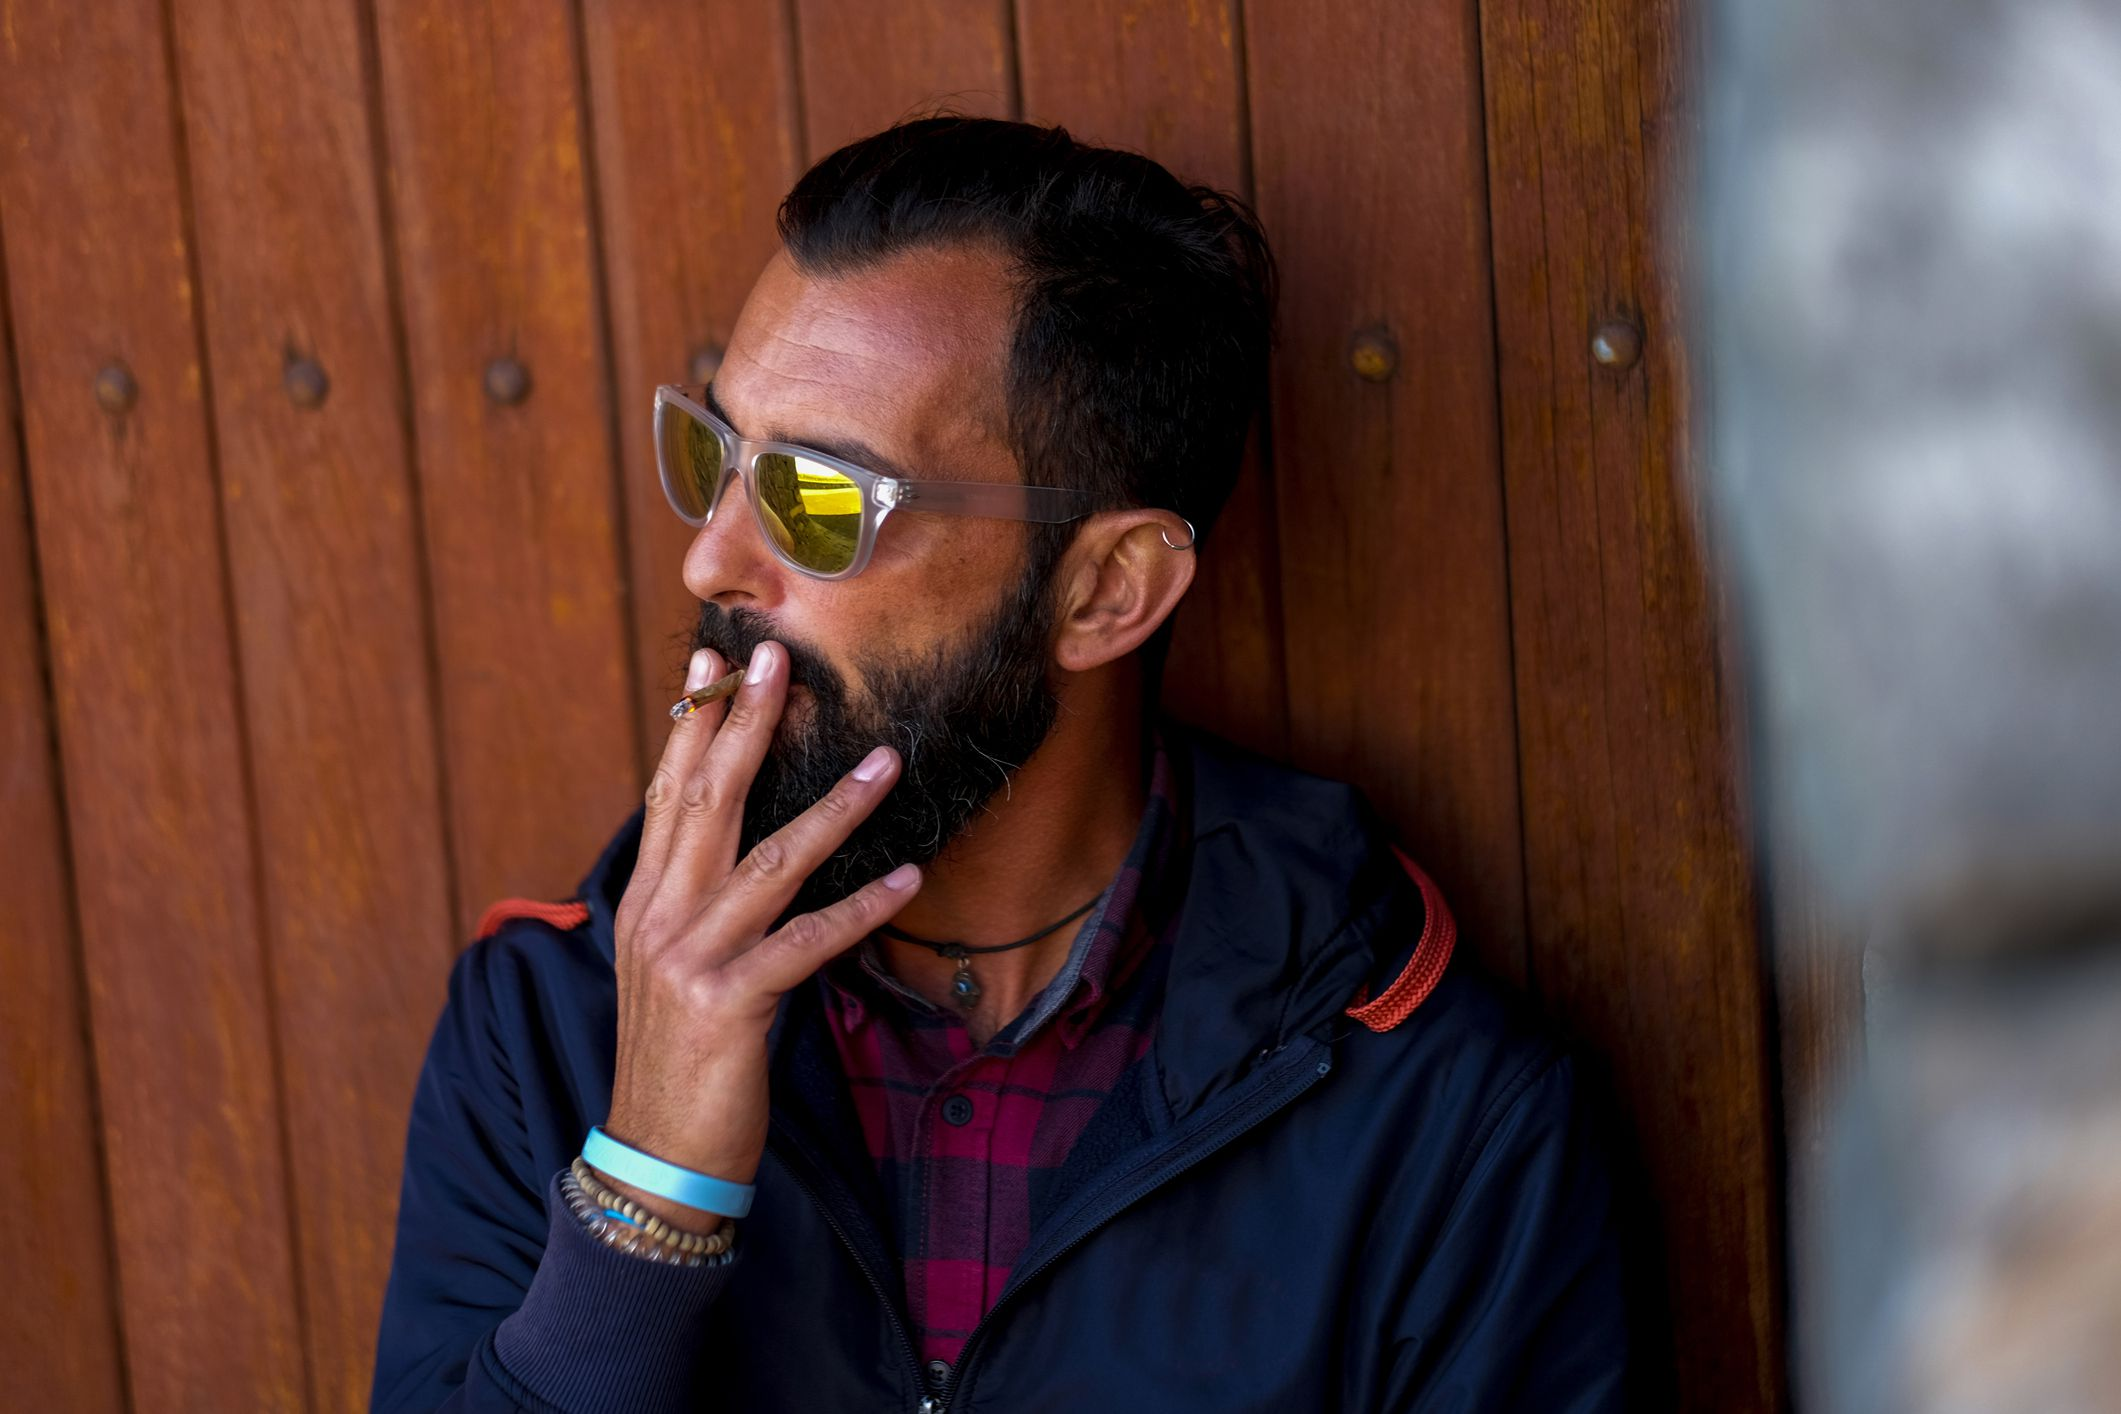 Cigar Smoking Trends And Risk Factors